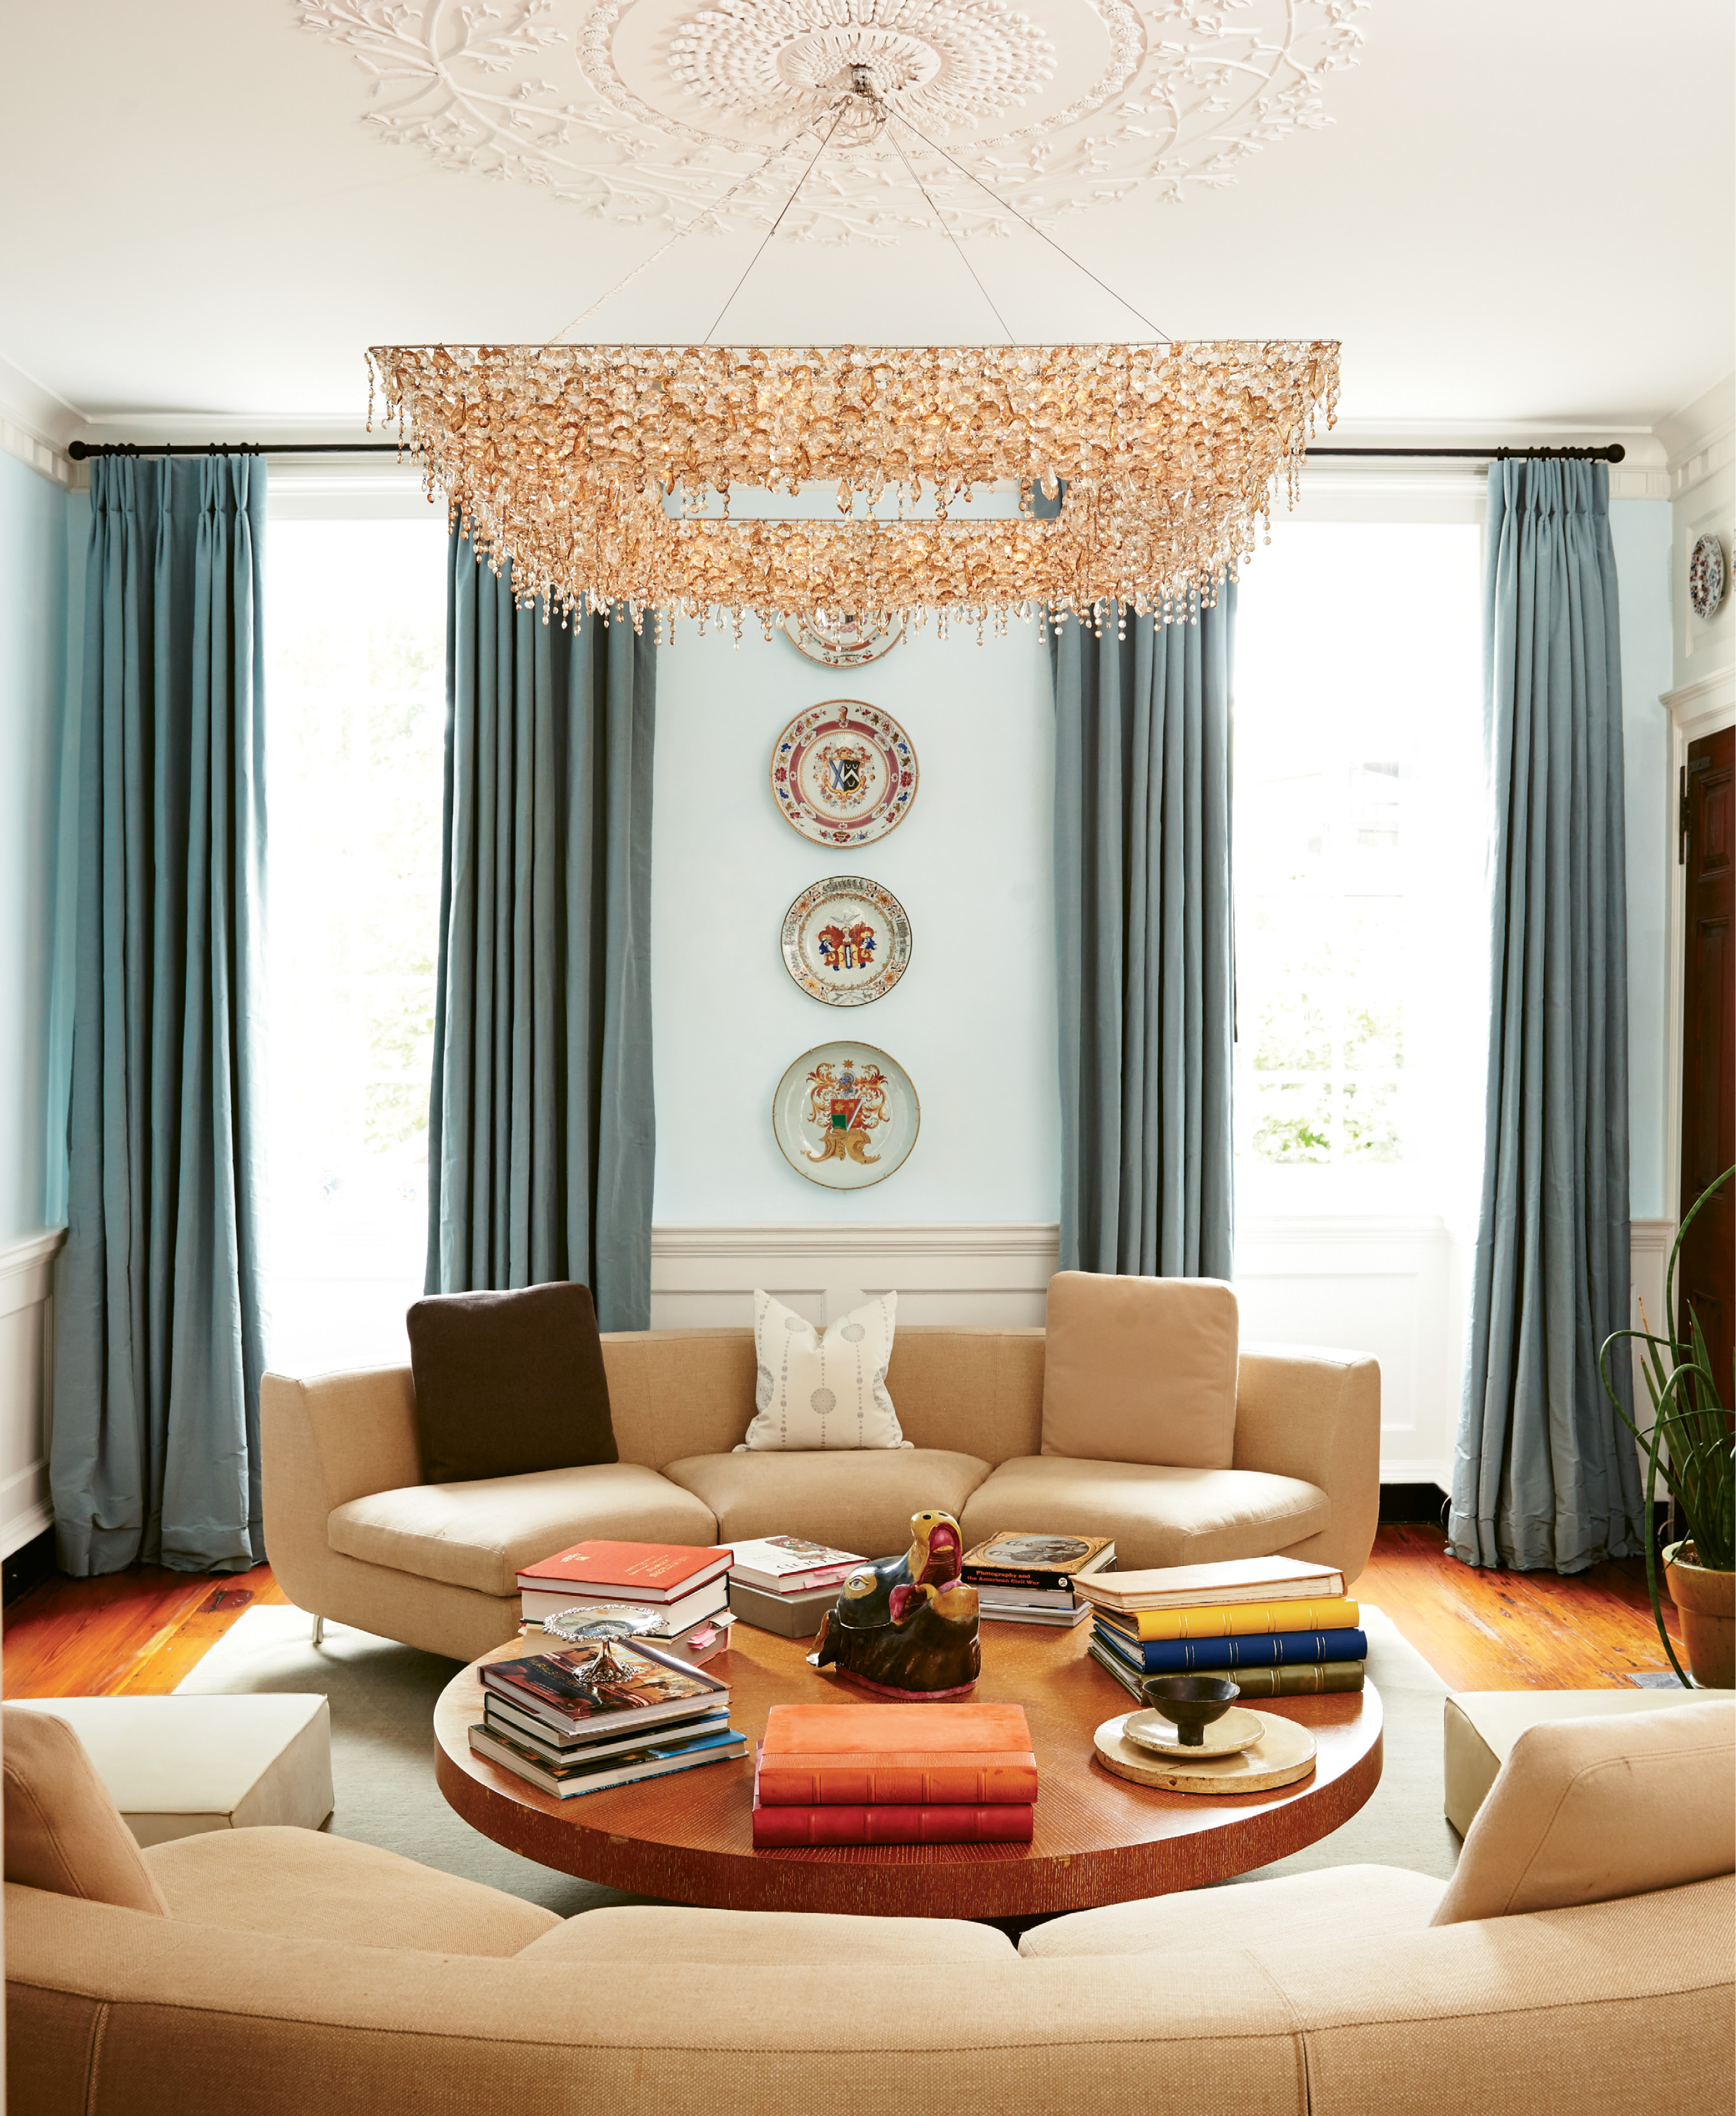 HIGH, LOW, & IN BETWEEN: The Pollaks enlisted jewelry designer and friend James de Givenchy to help them choose décor in keeping with their eclectic personal style. In the living room, a glittering chandelier and Suzanne's collection of 18th-century Chinese porcelain keep company with a coffee table from Crate & Barrel.